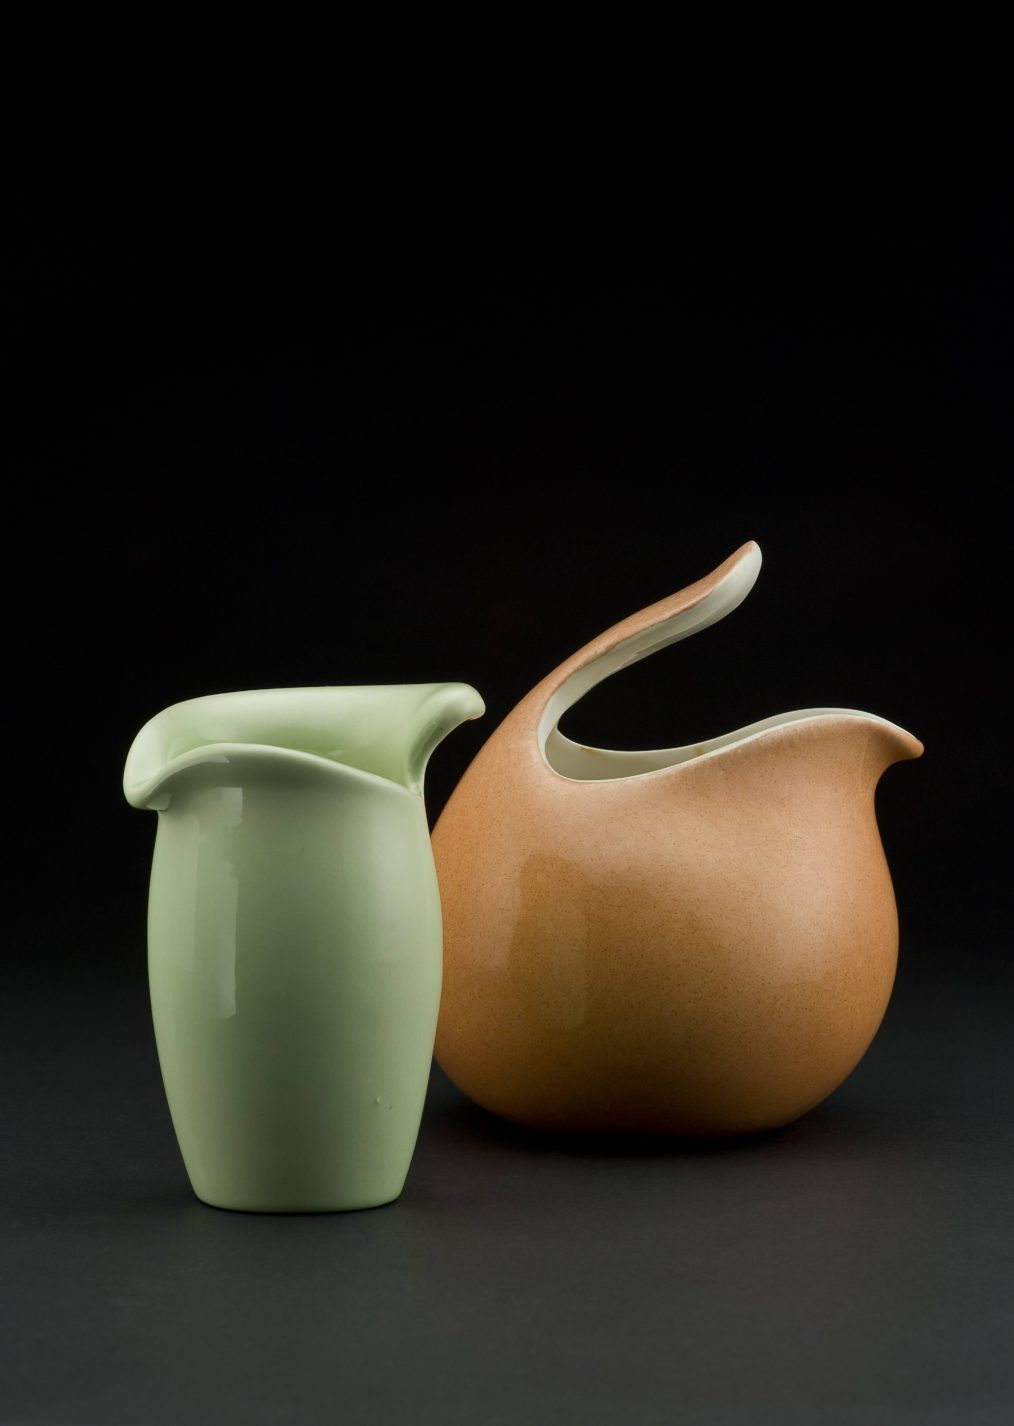 Two ceramic vessels. One pale green, slightly bulbous cylinder with a leaf-like opening at the top, the other terra-cotta colored spherical shape with a handle protruding over the opening at the top.